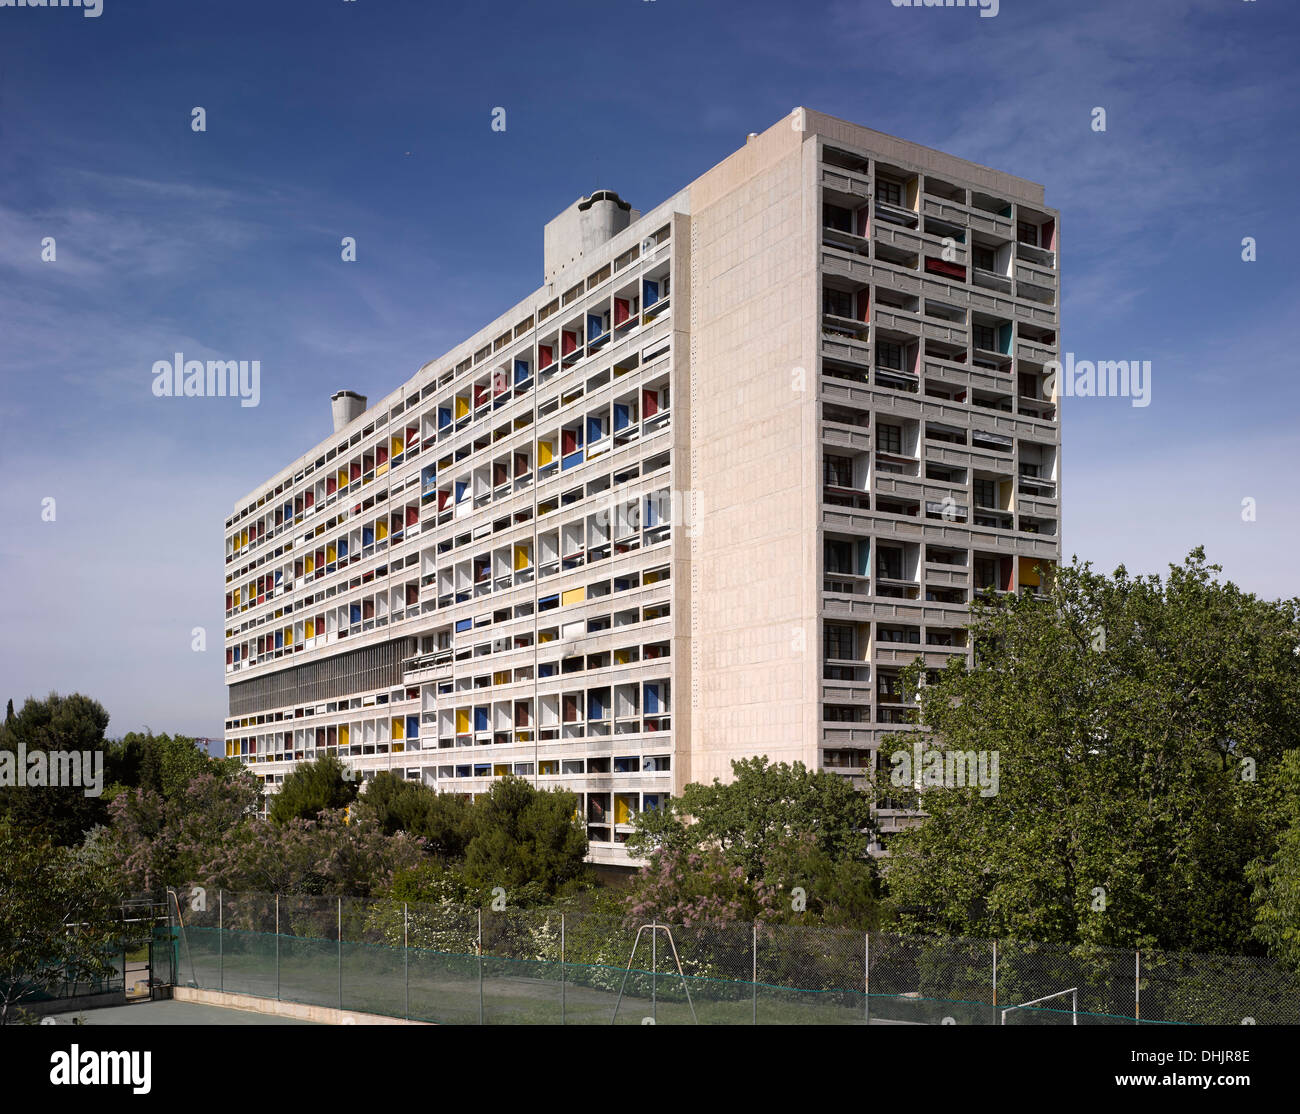 unite d 39 habitation marseille france architect le corbusier 1952 stock photo 62493662 alamy. Black Bedroom Furniture Sets. Home Design Ideas